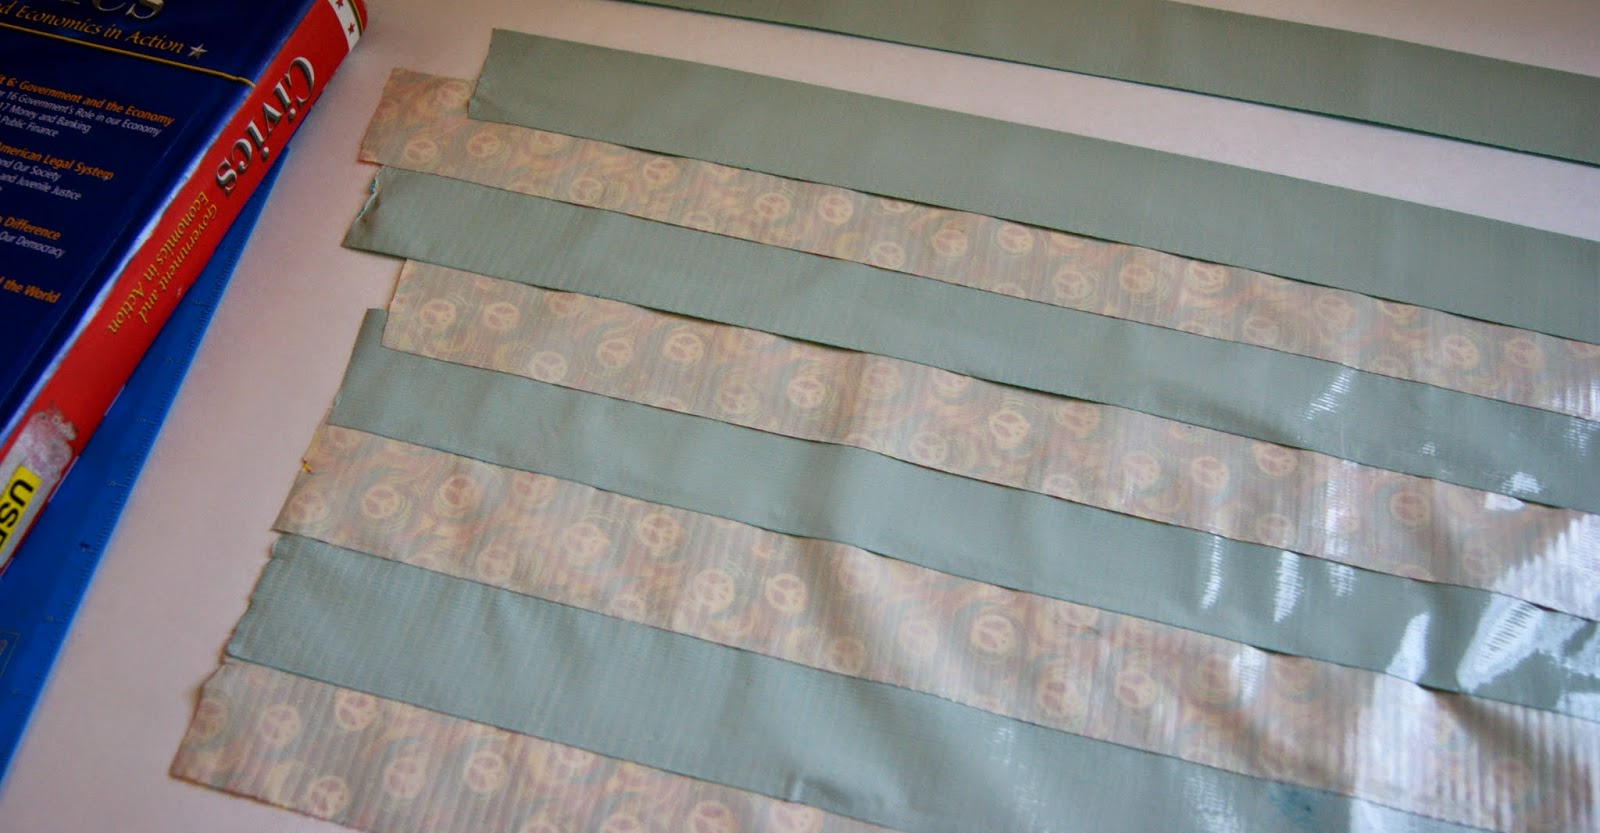 How To Make A Book Cover Without Tape ~ Michelle paige s book covers with duck tape and washi